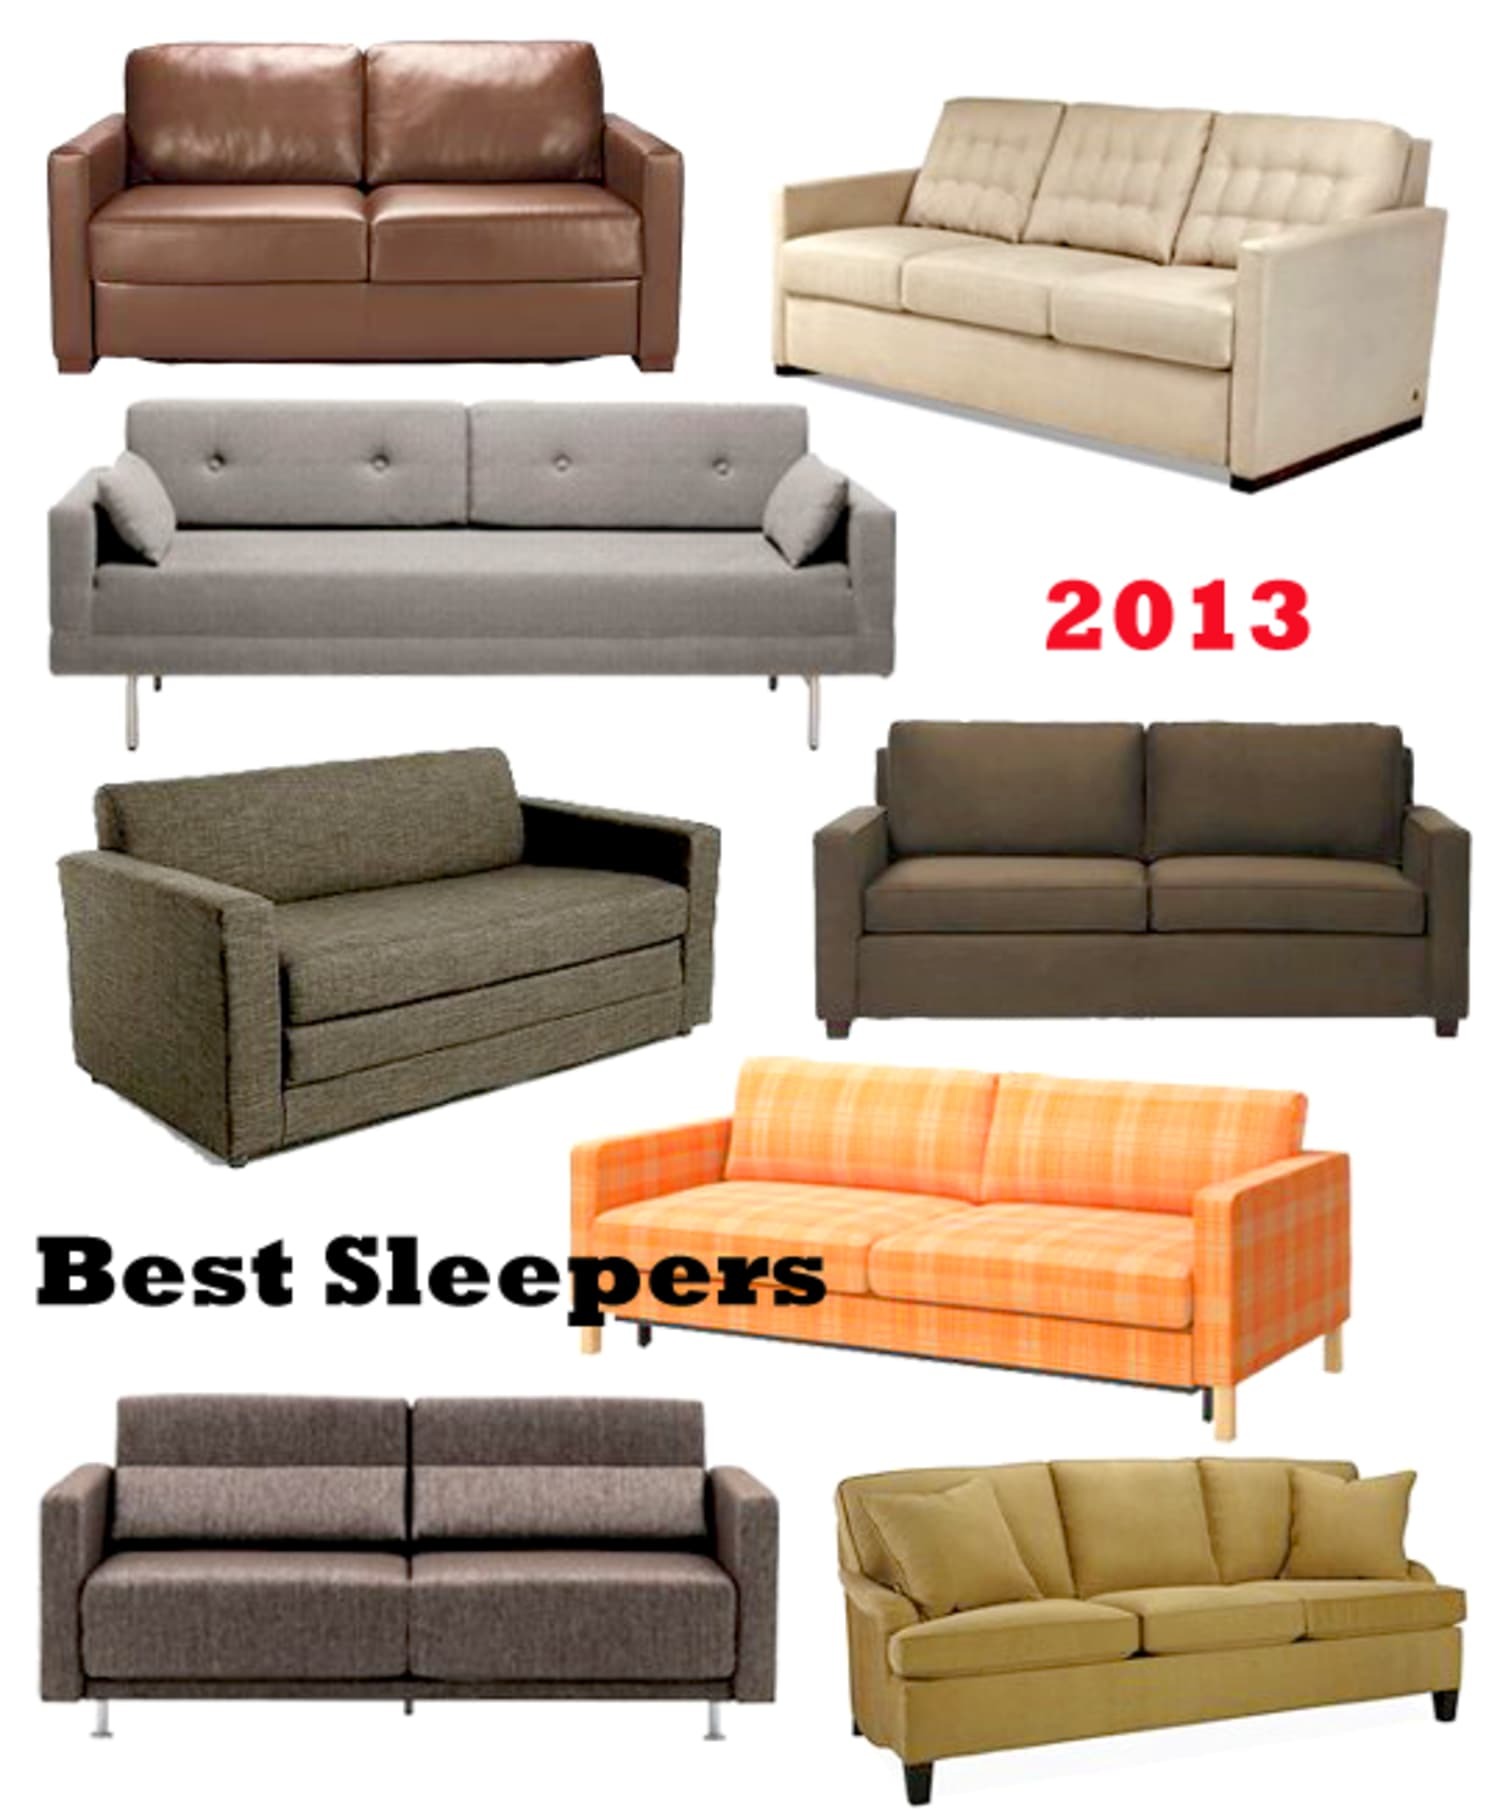 16 Best Sleeper Sofas & Sofa Beds 2013 | Apartment Therapy